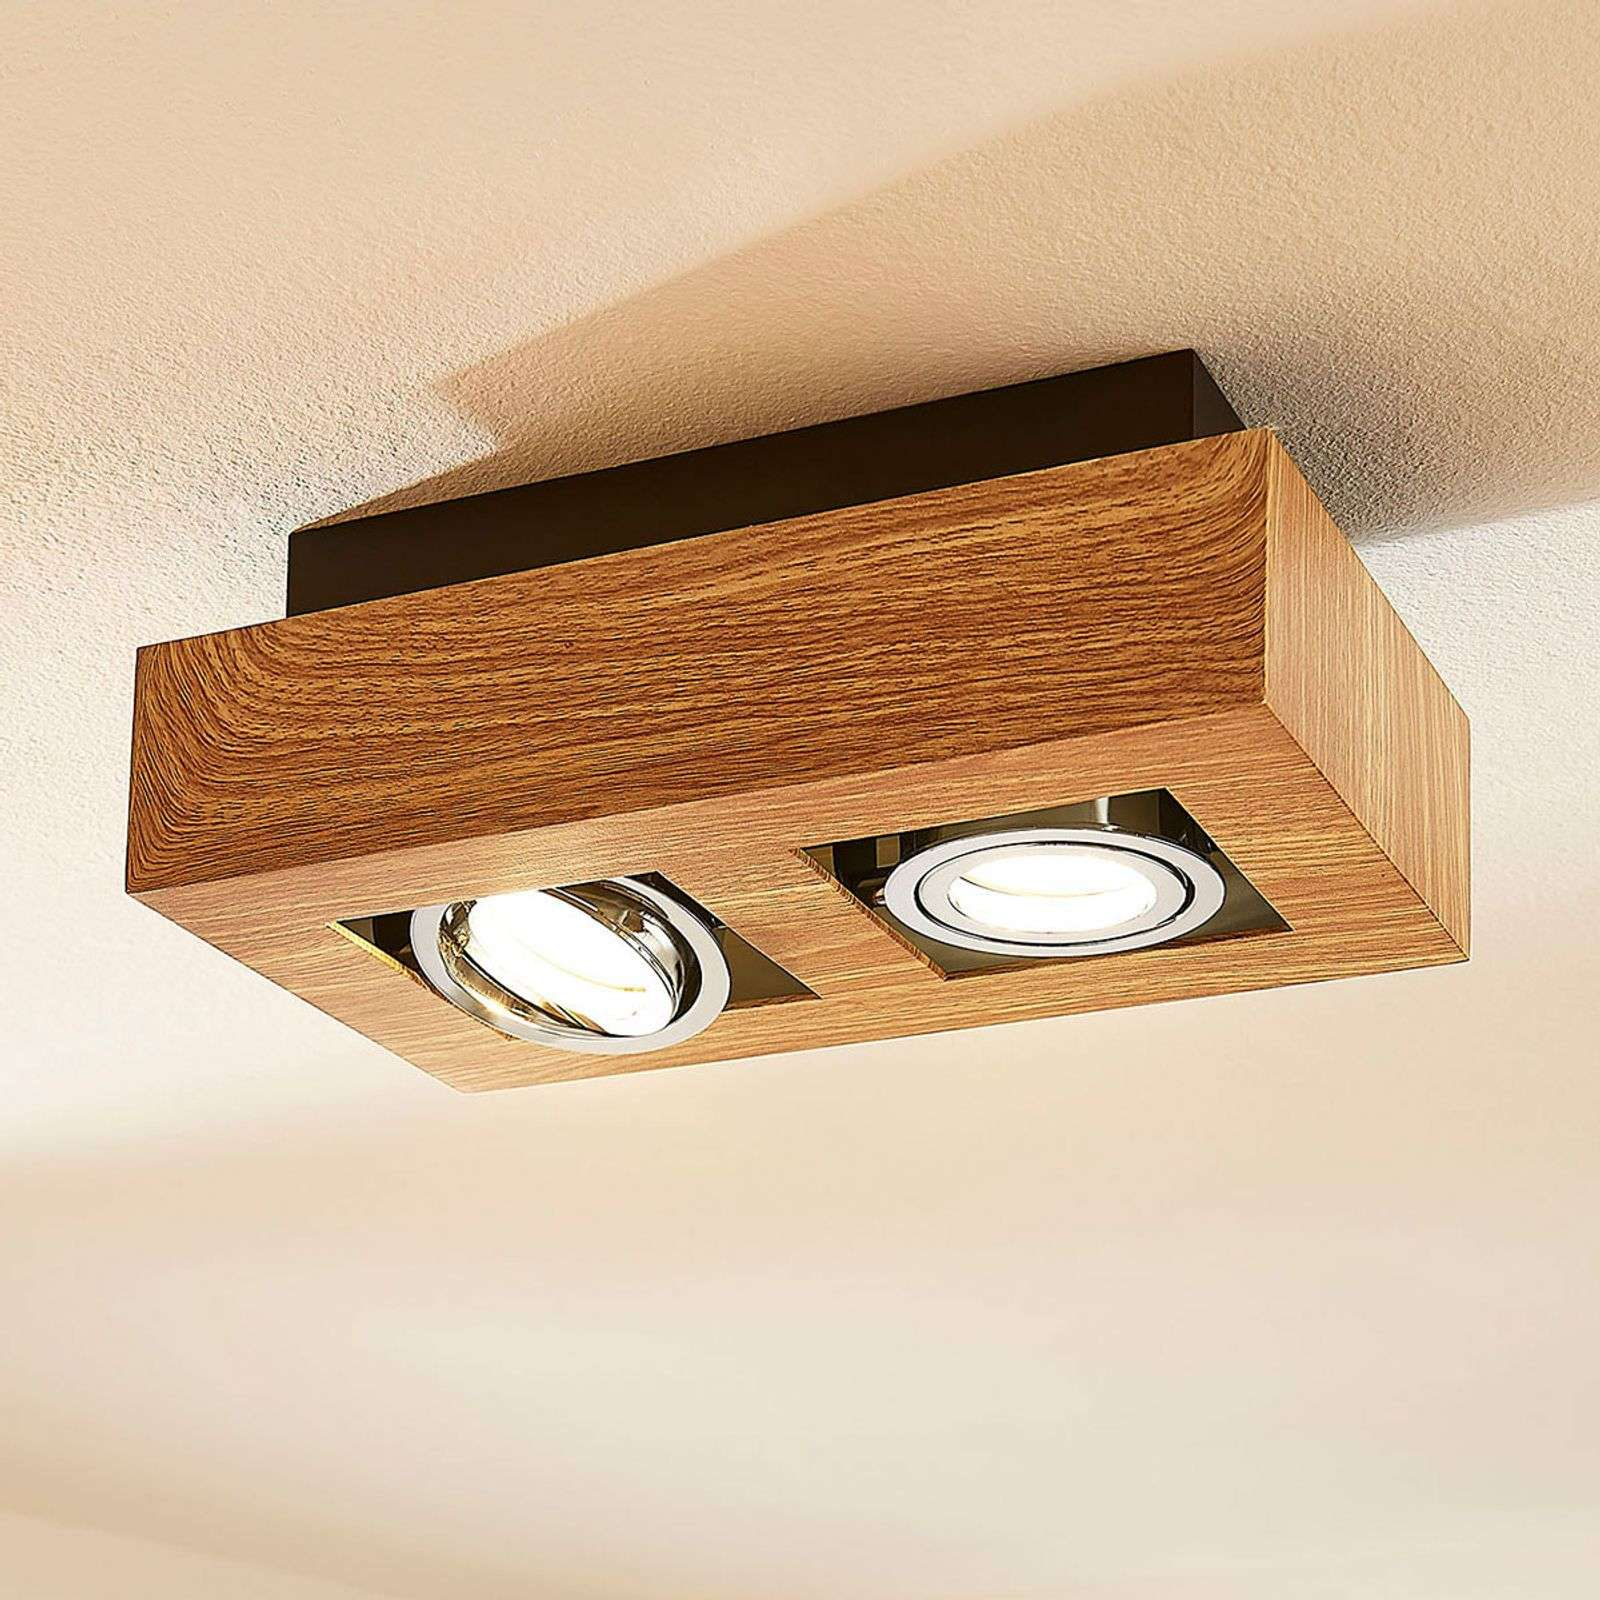 Foco LED Vince 2 brazos, color madera